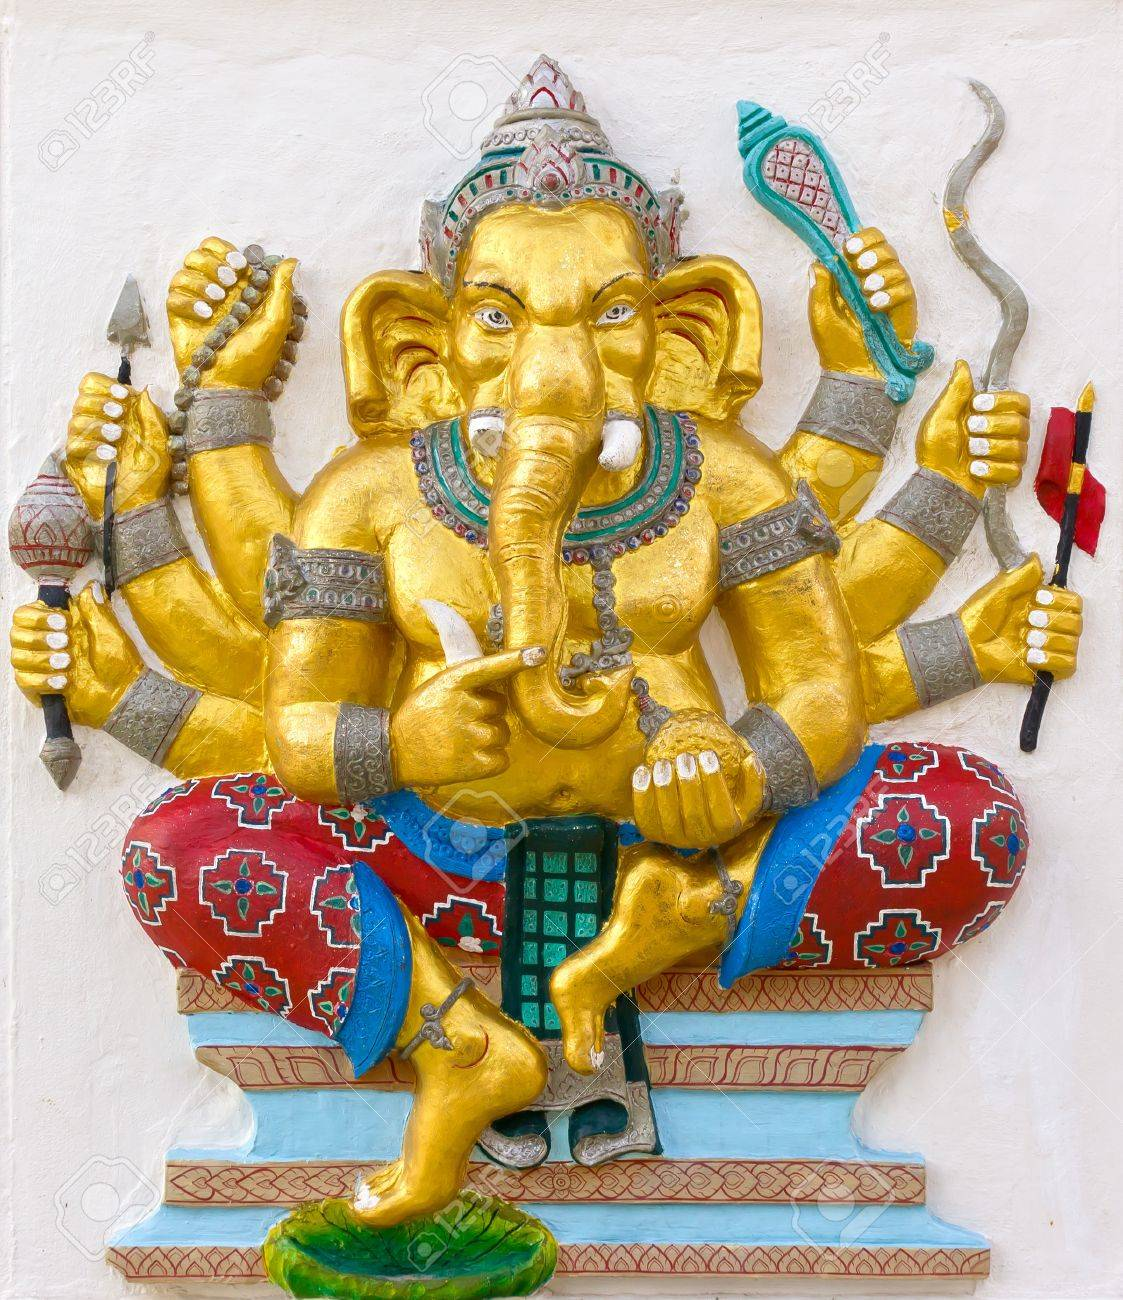 Indian God Ganesha or Hindu God Name Duraga Ganapati avatar image